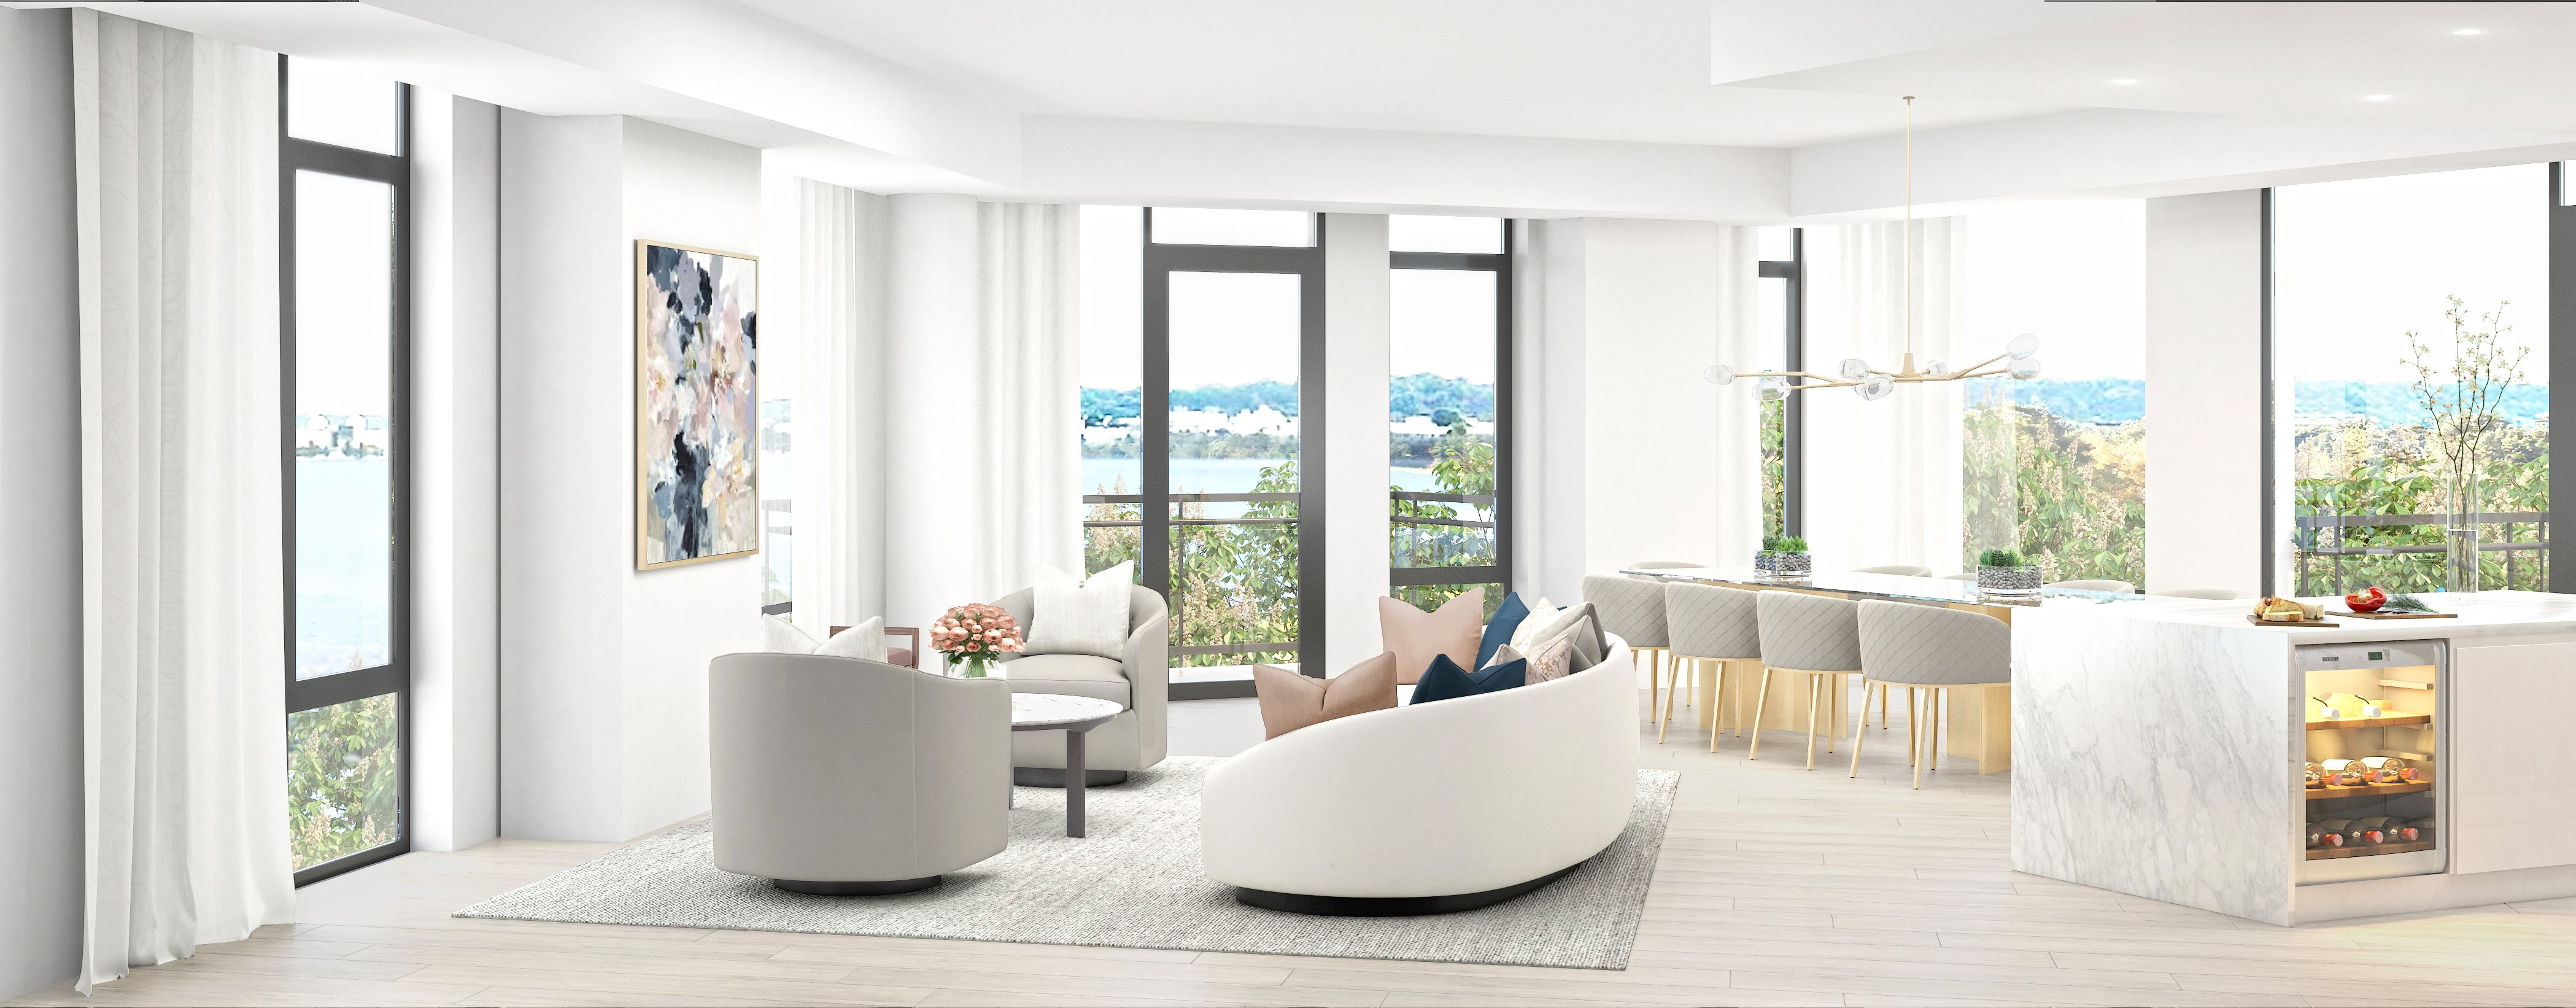 Living Area featured in the Residence C8 By MUSE in Washington, VA